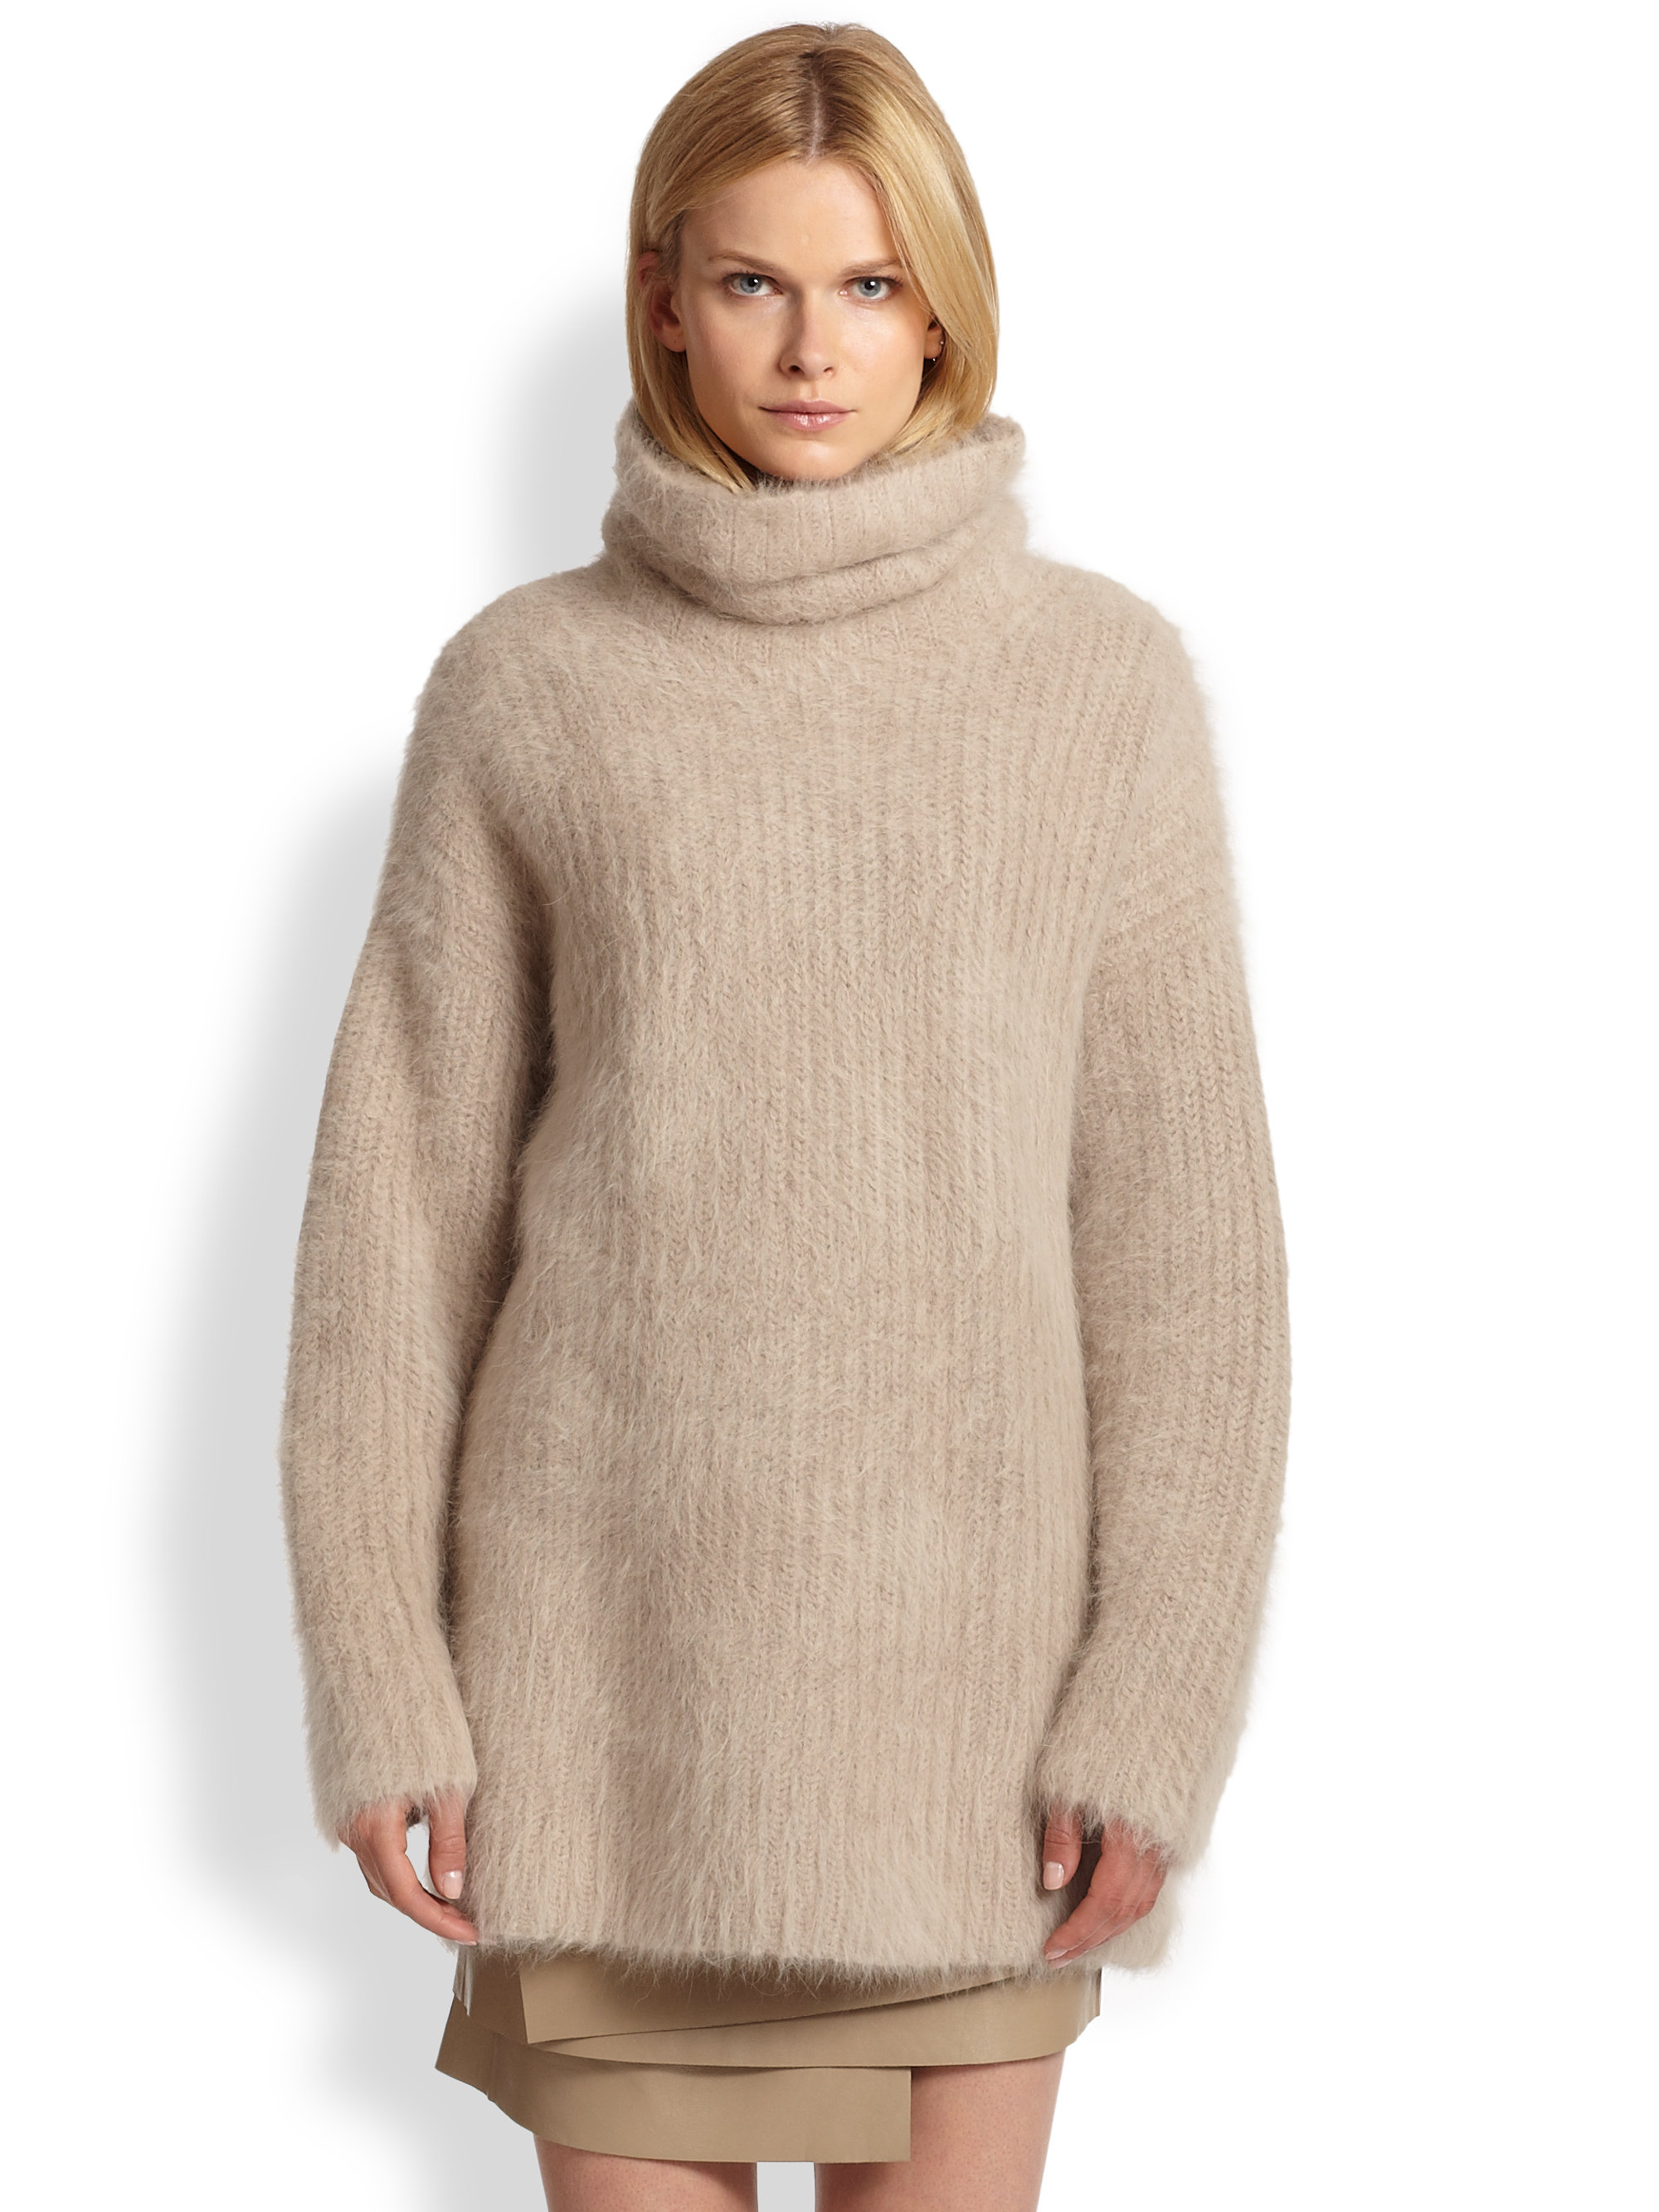 Helmut lang Veneered Angora Turtleneck Sweater in Natural | Lyst